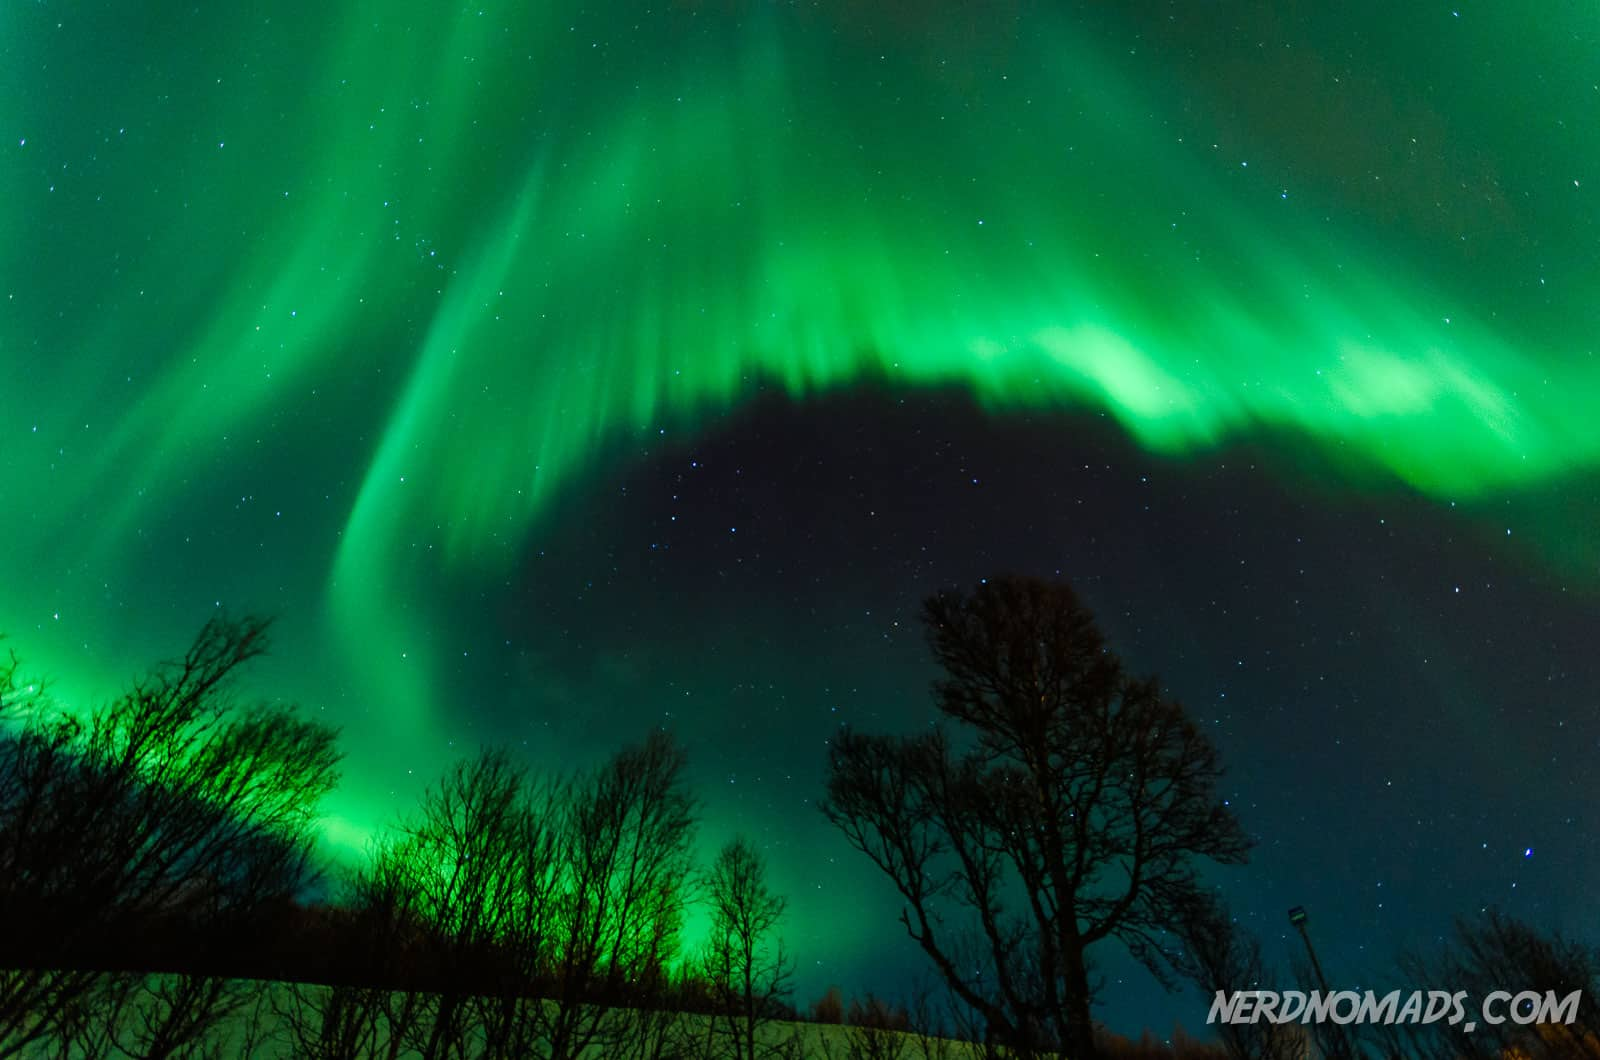 Chasing the Northern Lights in Tromso, Norway - Nerd Nomads